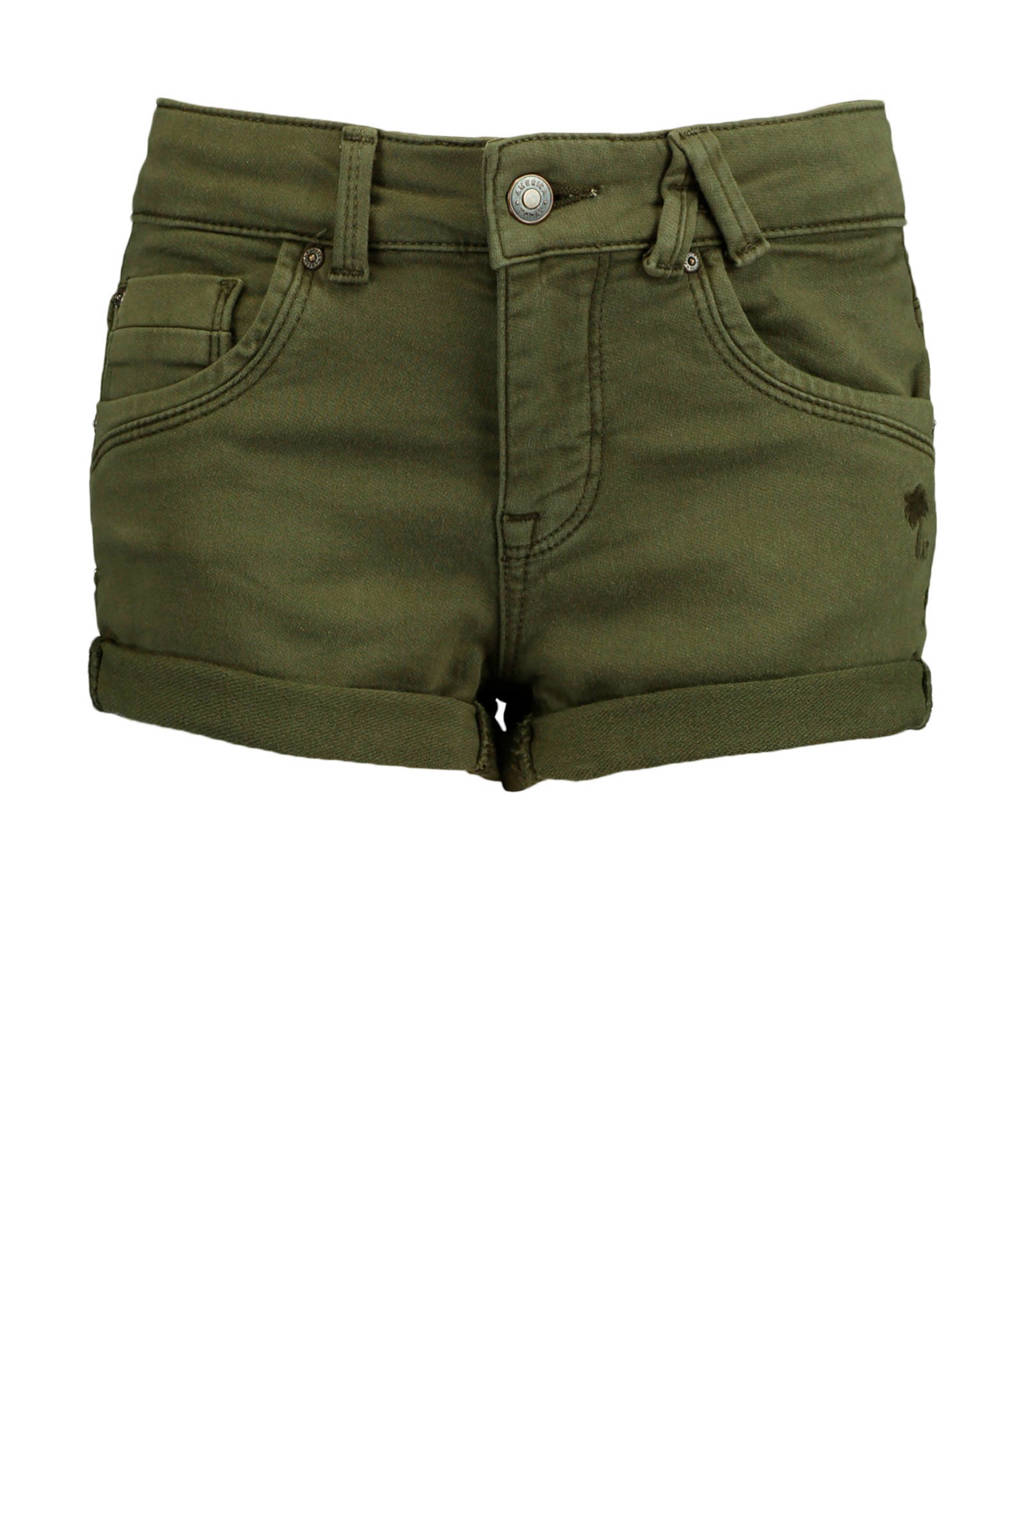 America Today Junior short Noelle army, Army